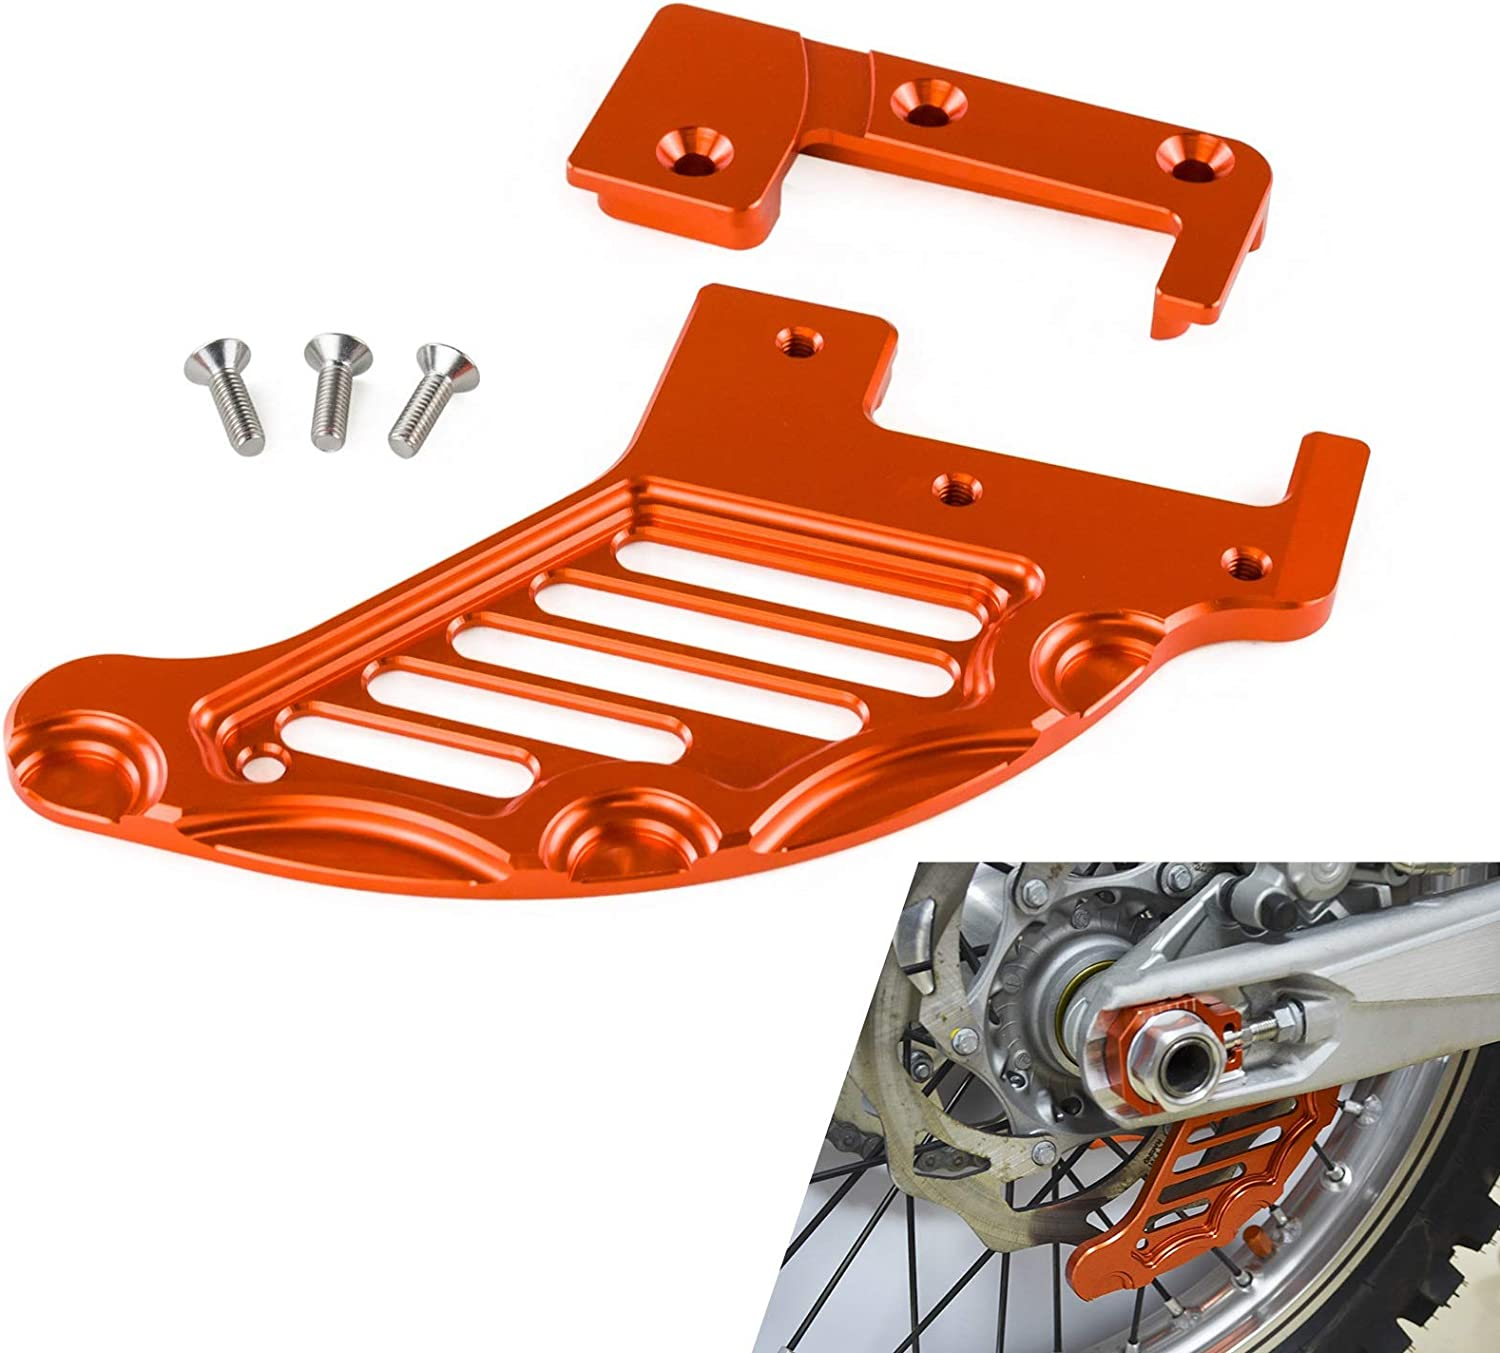 CNC Rear Brake Disc Guard Protect For KTM 150 200 250 300 400 450 500 530 XCW